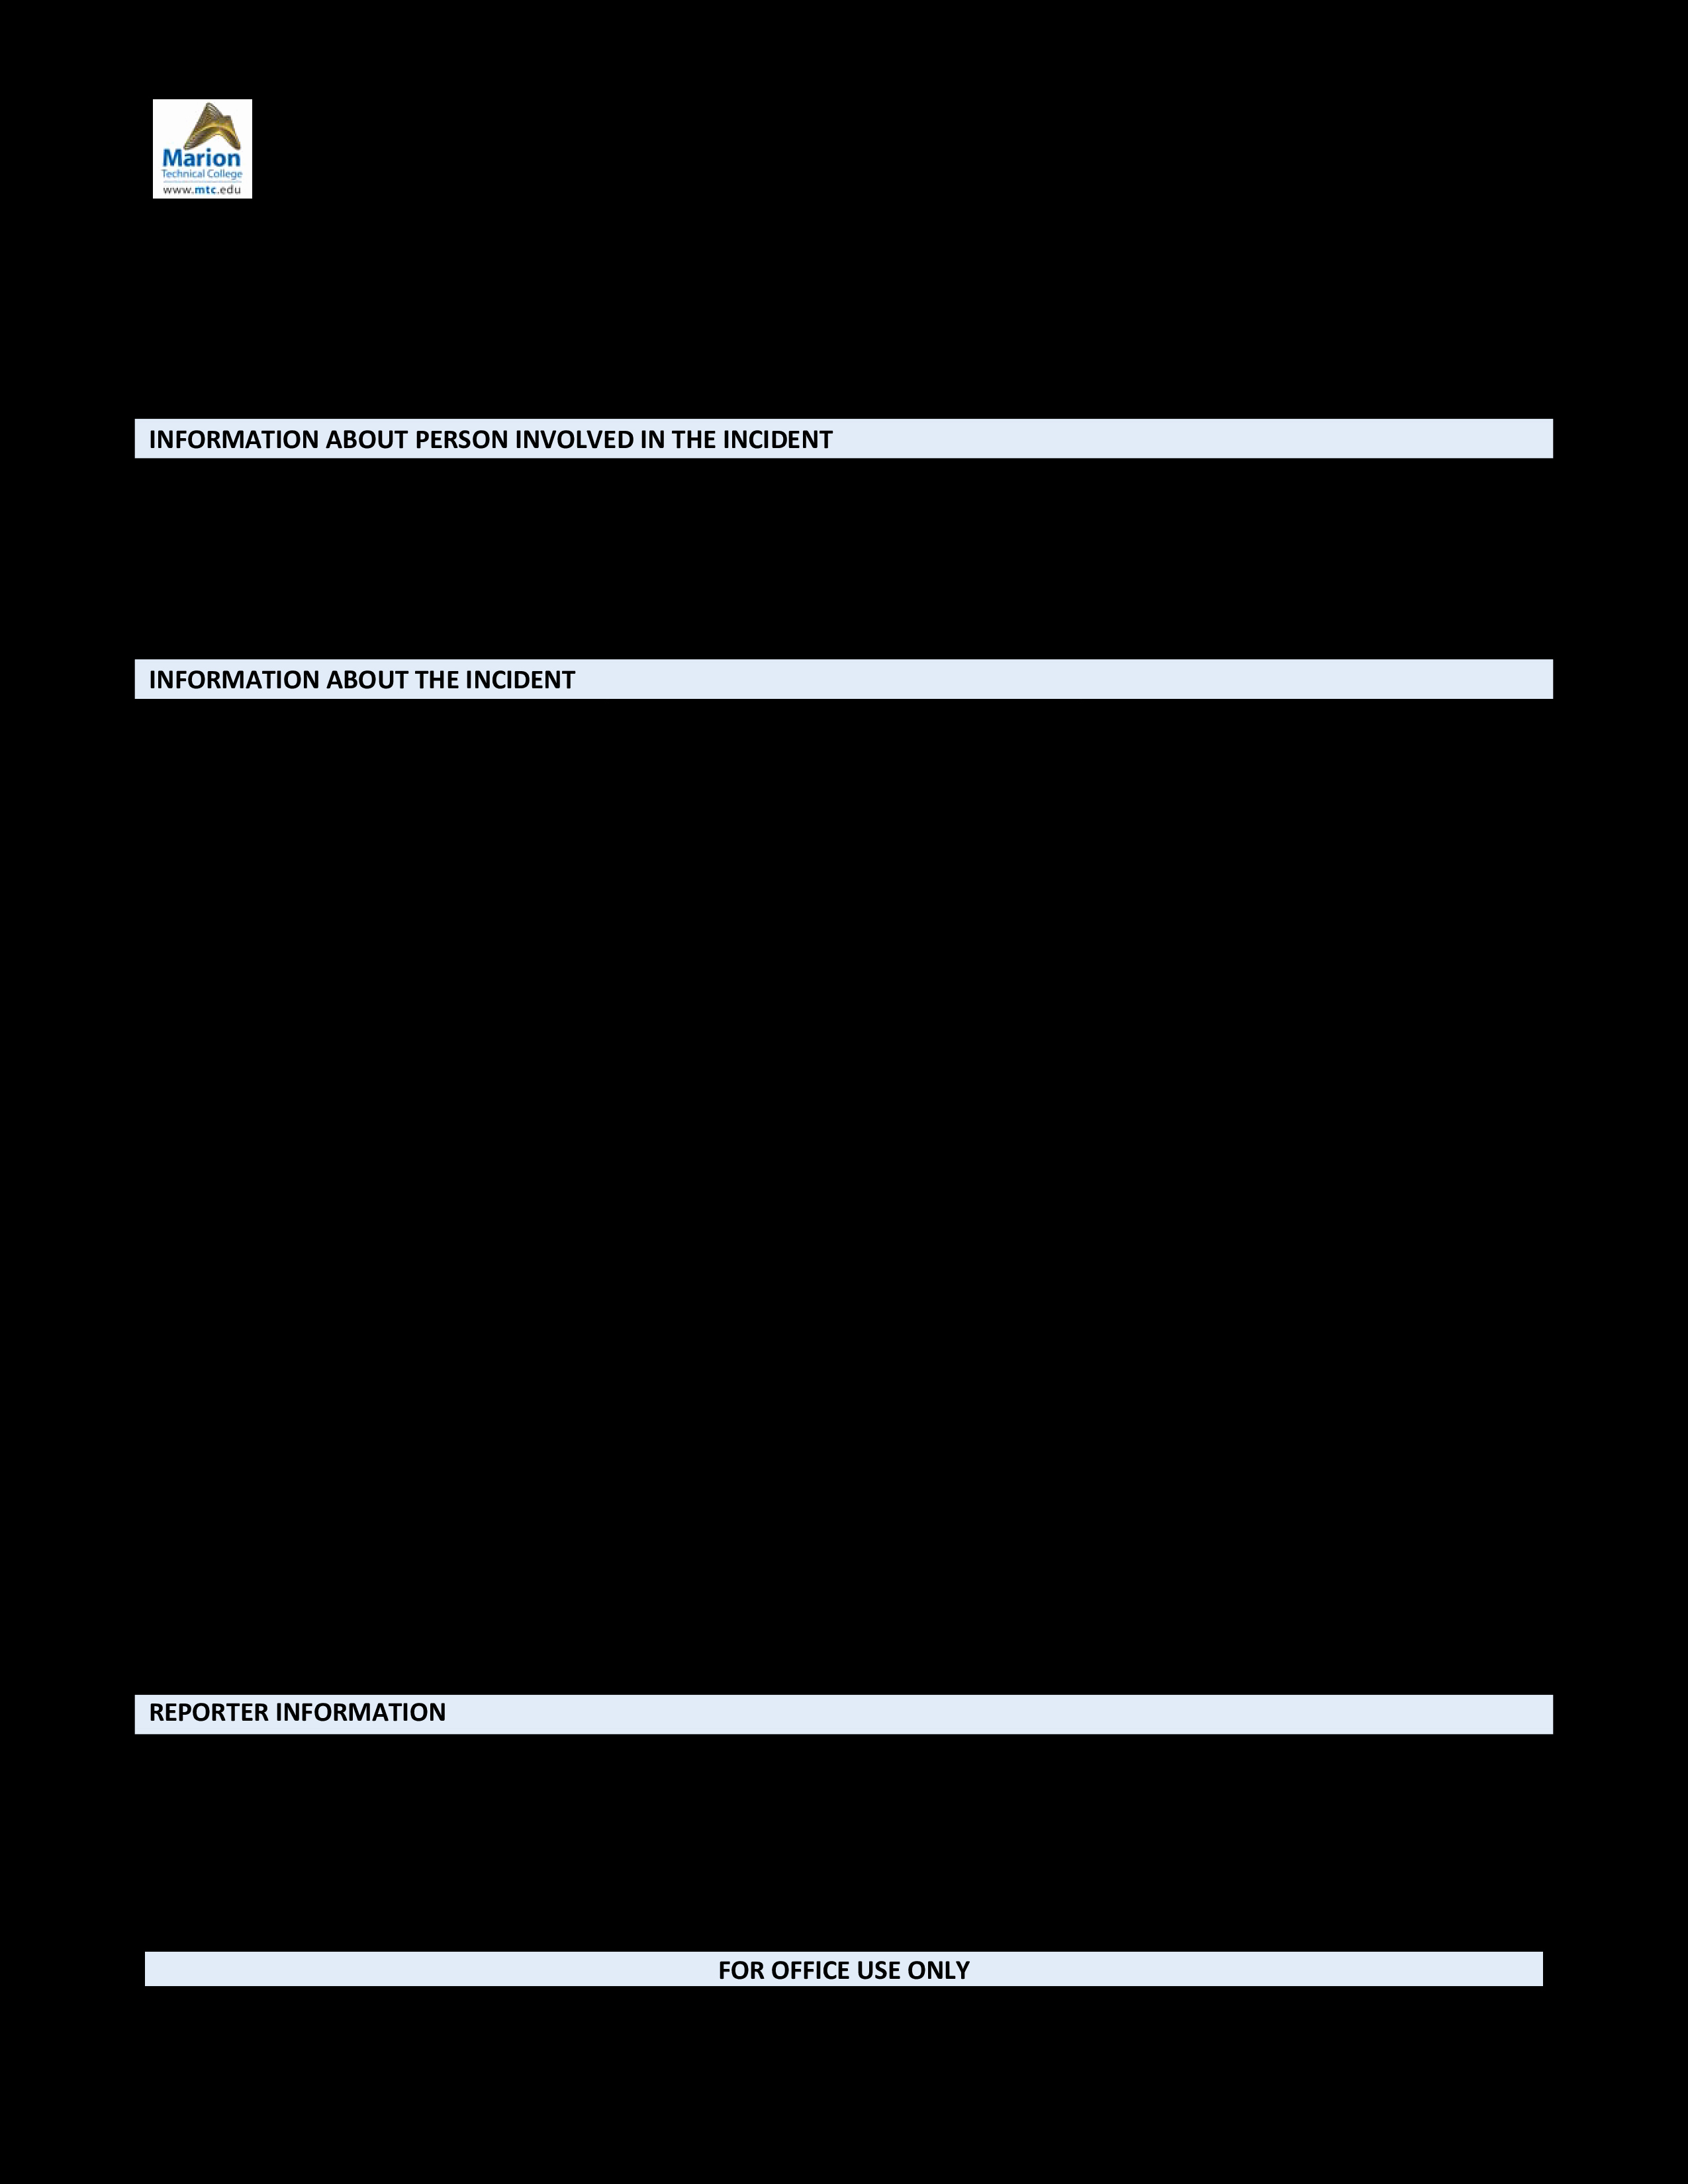 Blank Police Report Template Lovely Blank Police Report